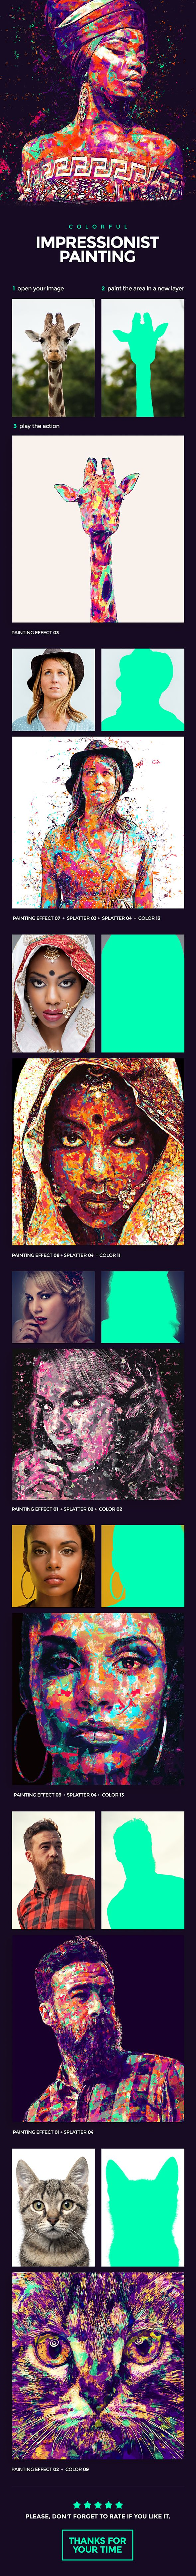 Impressionist Painting Photoshop Action. Download here: https://graphicriver.net/item/colorful-impressionist-painting-photoshop-action/16924846?ref=ksioks